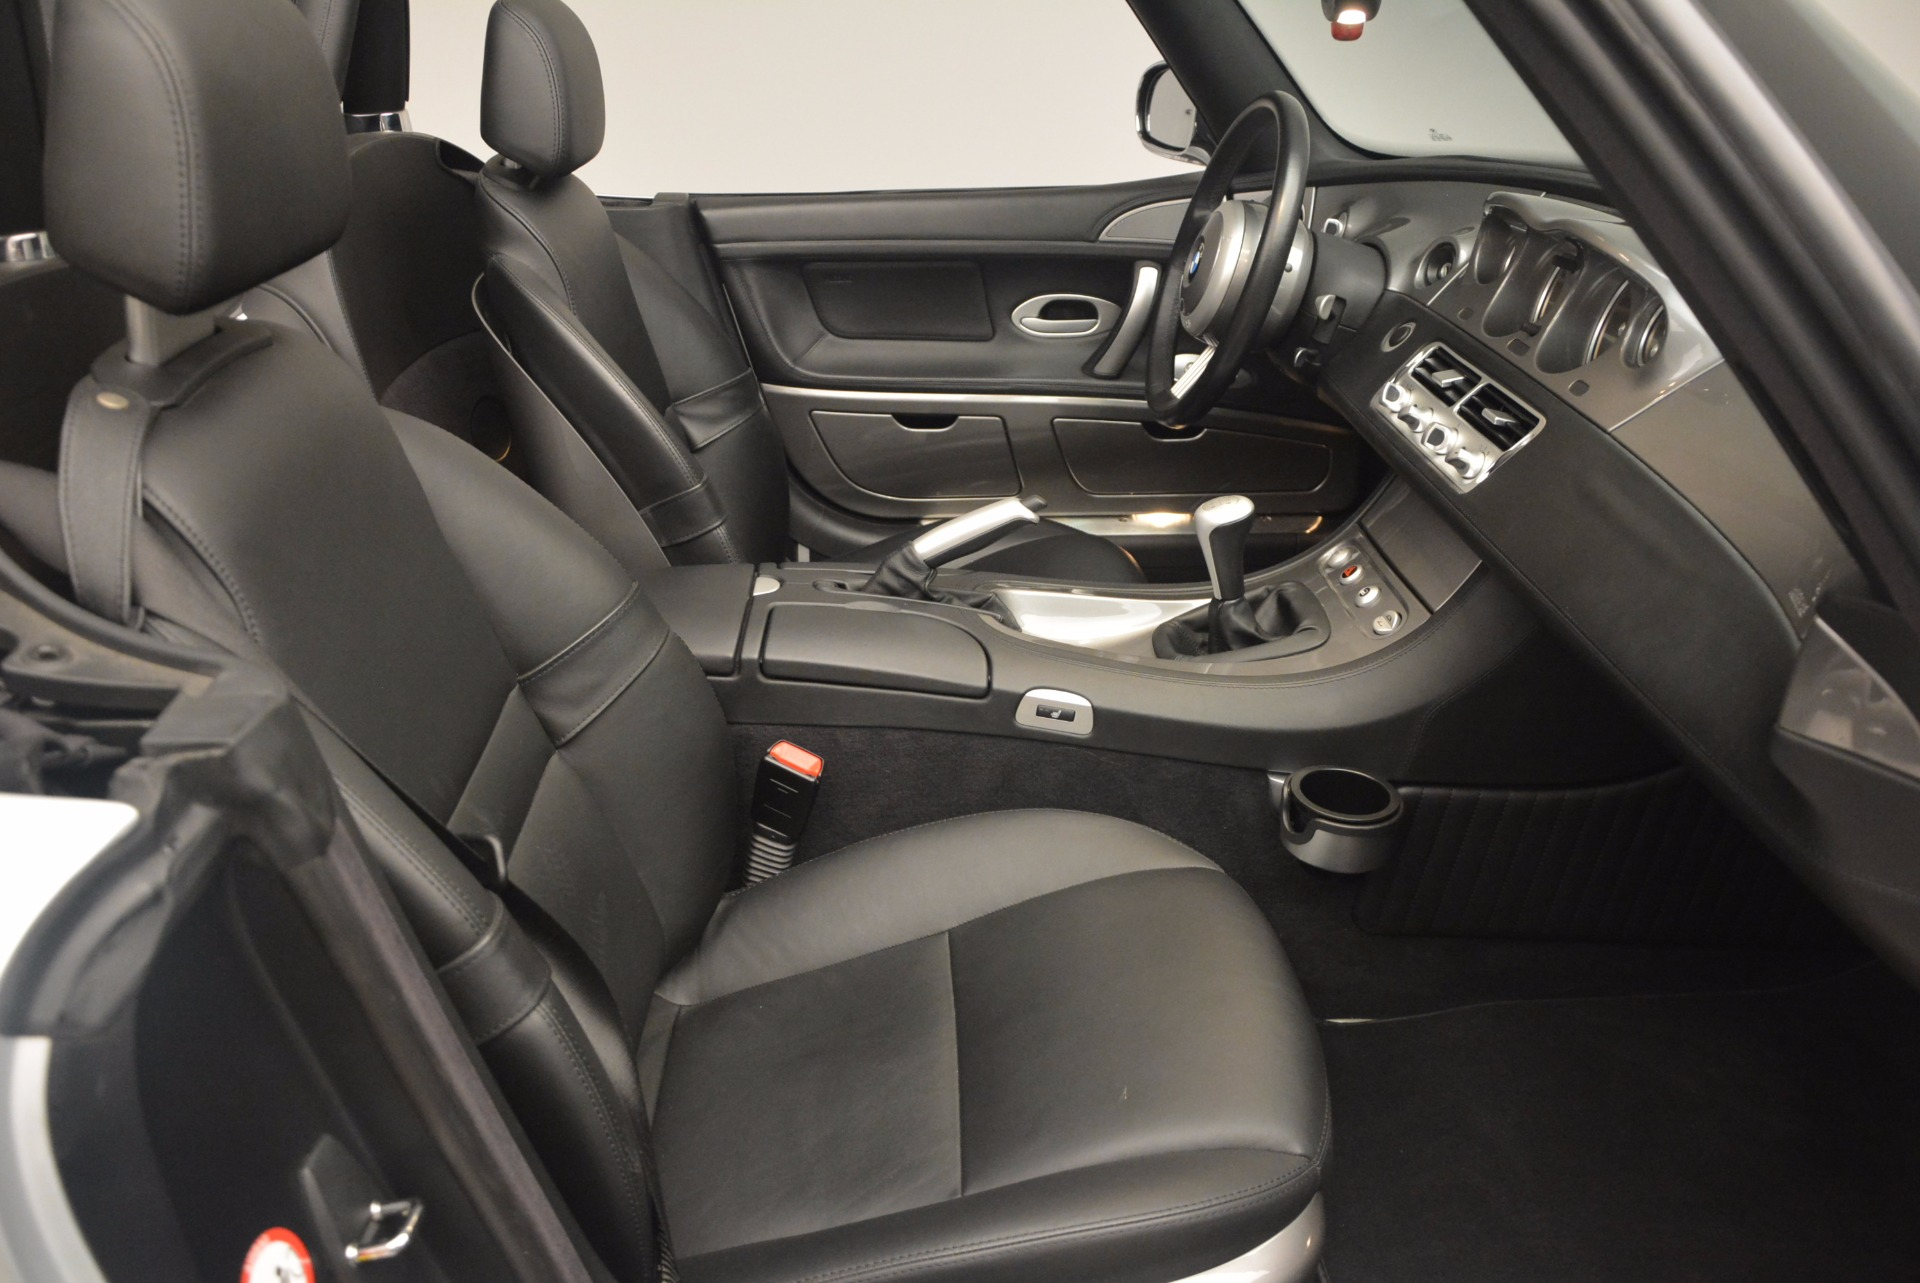 Used 2001 BMW Z8  For Sale In Greenwich, CT. Alfa Romeo of Greenwich, 7221 1293_p42